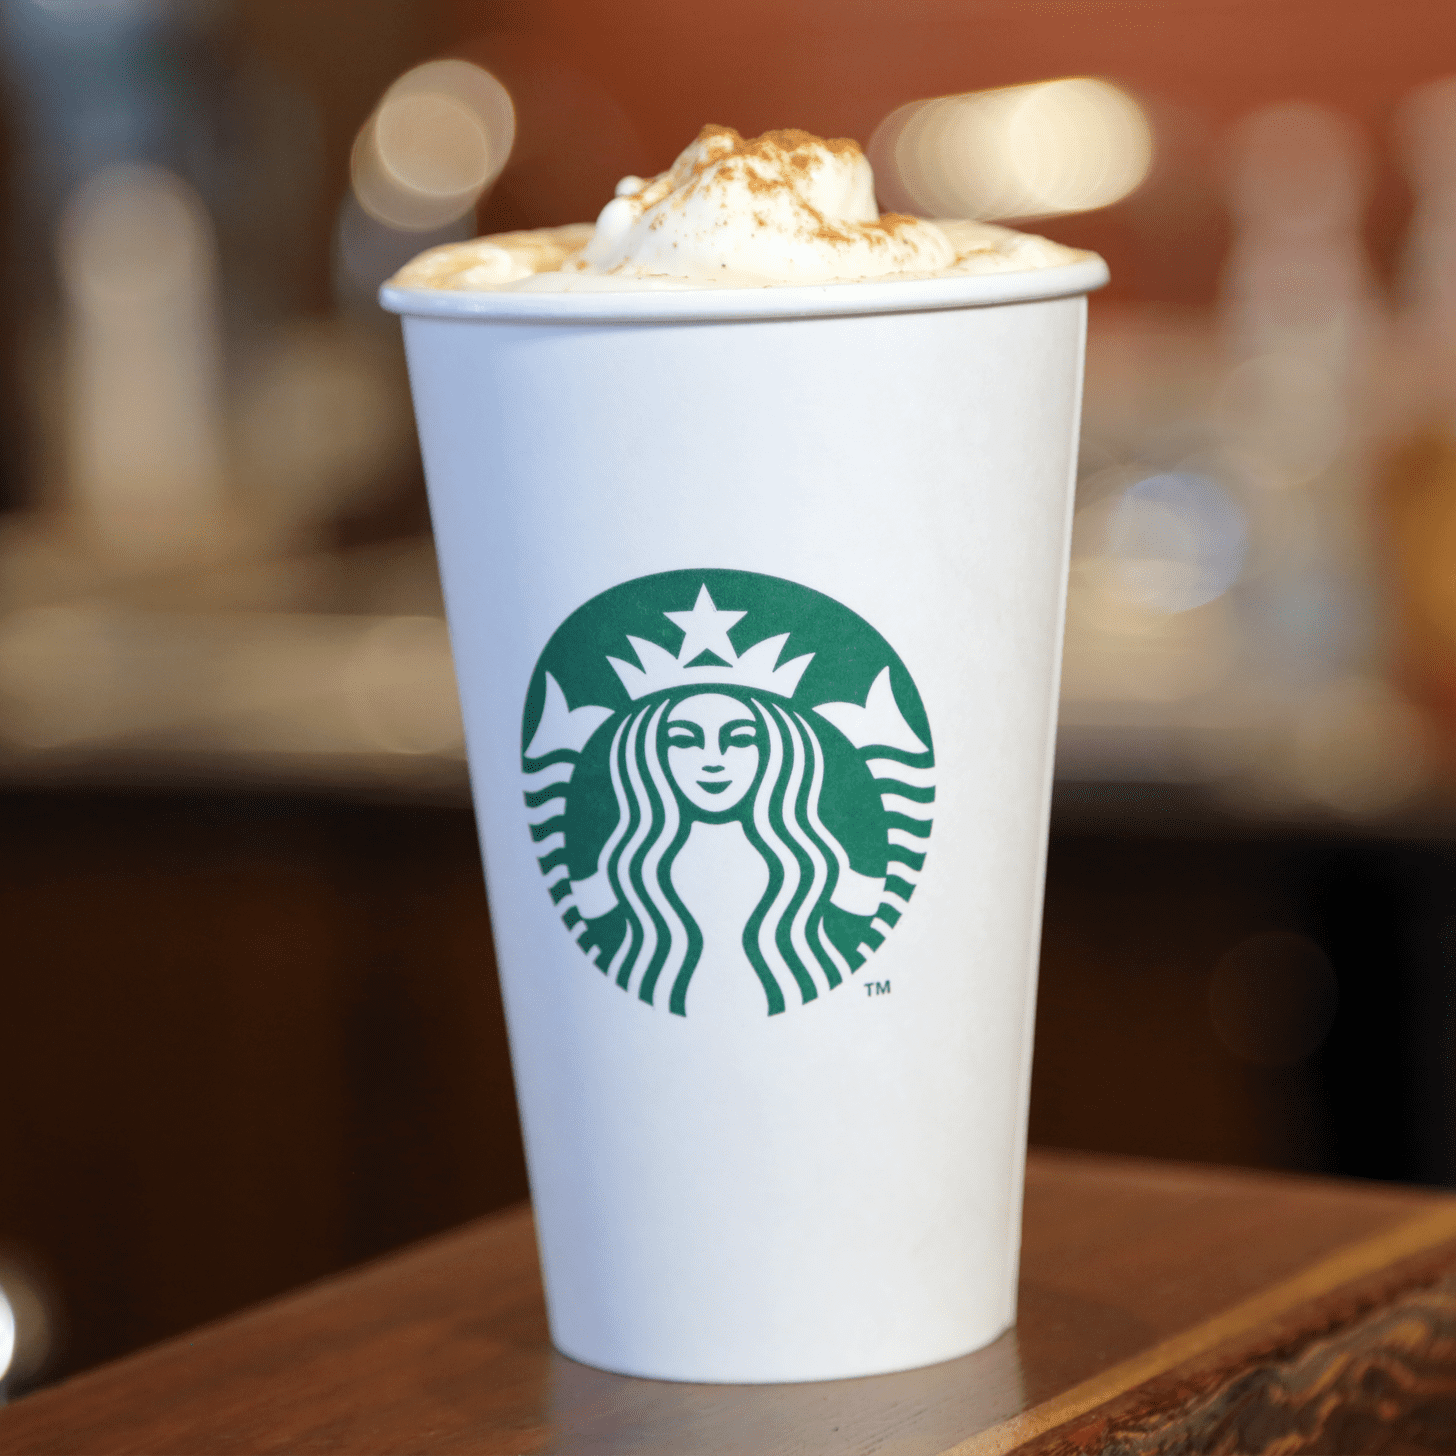 Starbucks New Pumpkin Spice Latte Recipe Will Taste the ...